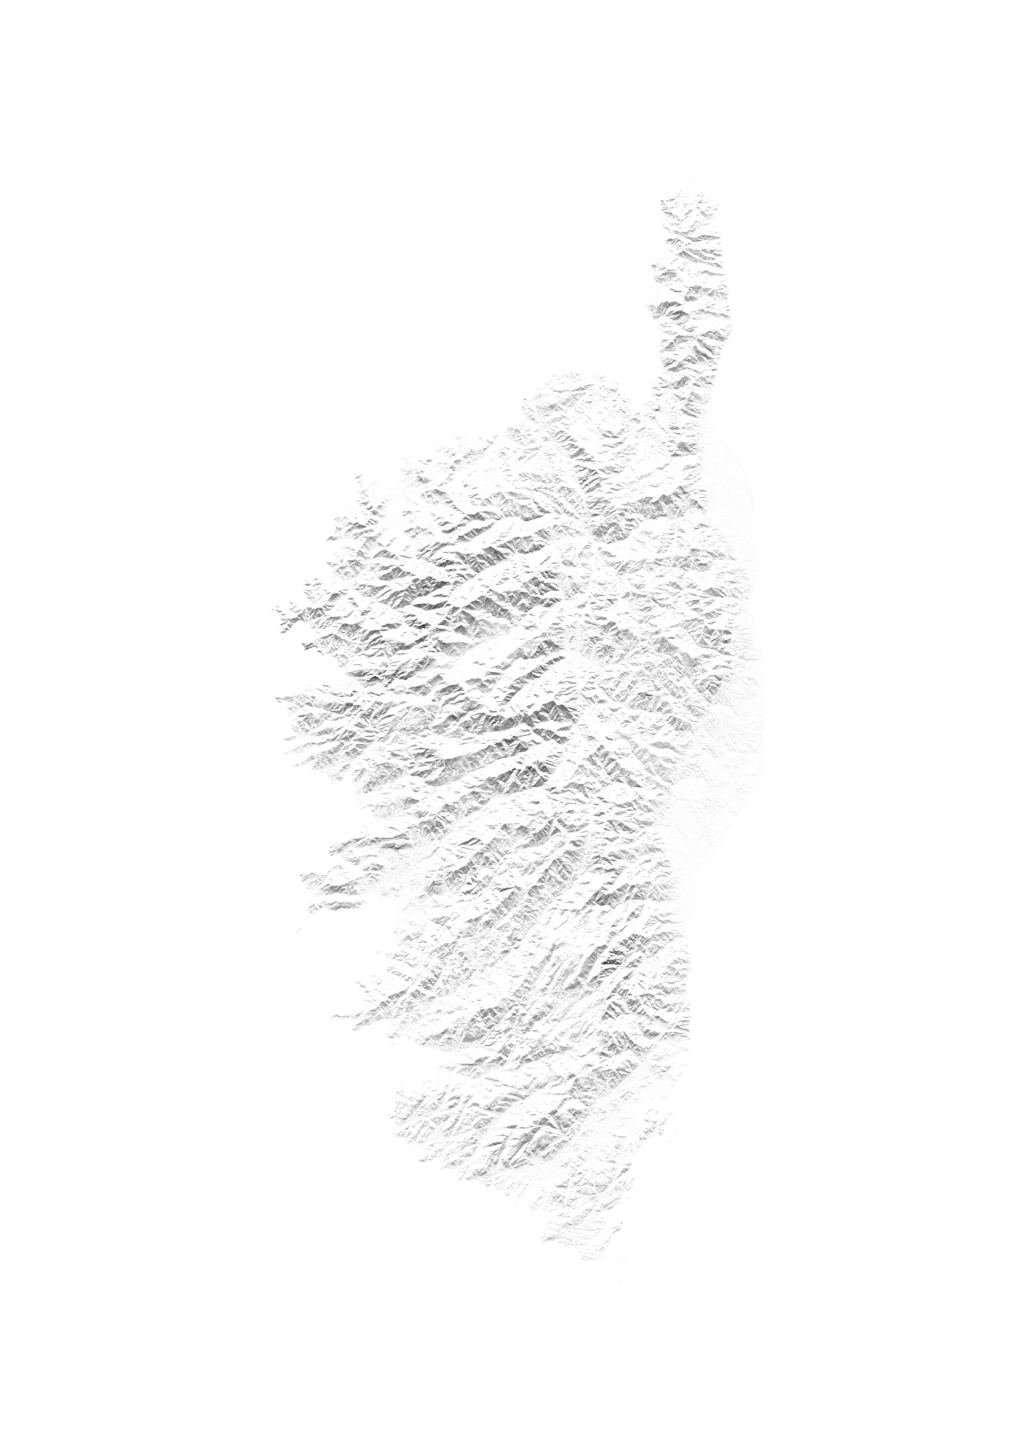 Corse wall map